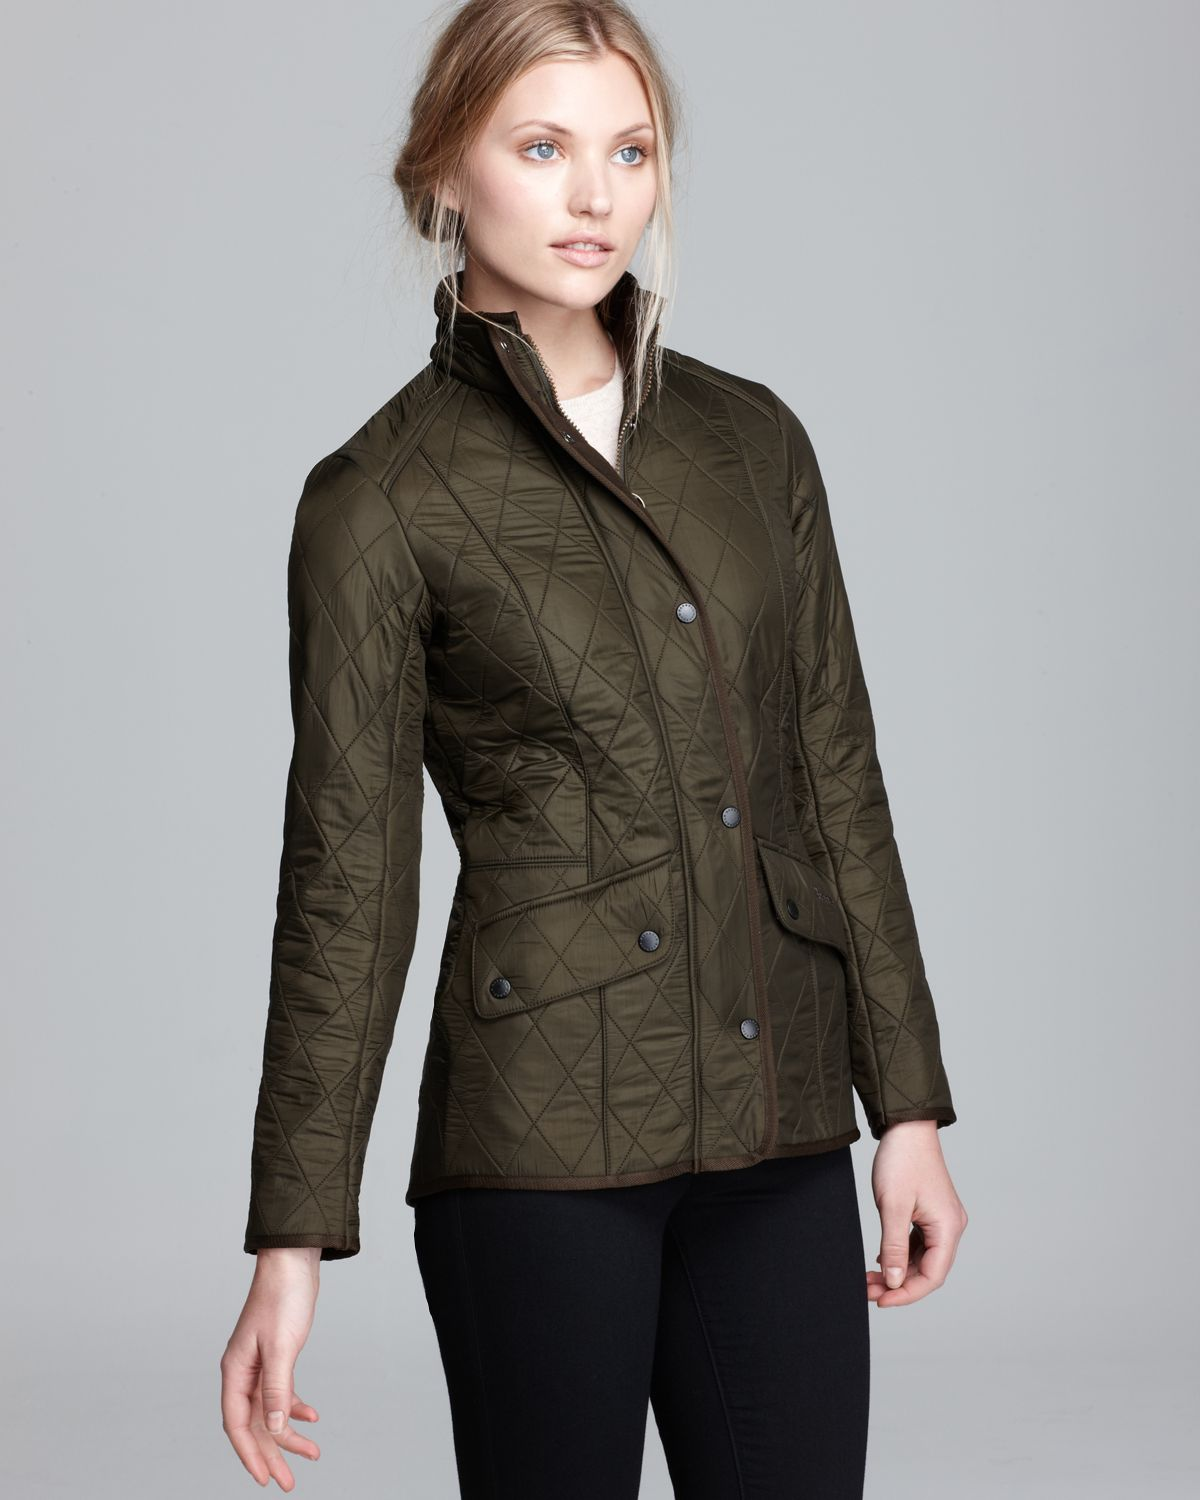 Lyst - Barbour Cavalry Polarquilt Jacket in Green : barbour polarquilt quilted jacket - Adamdwight.com